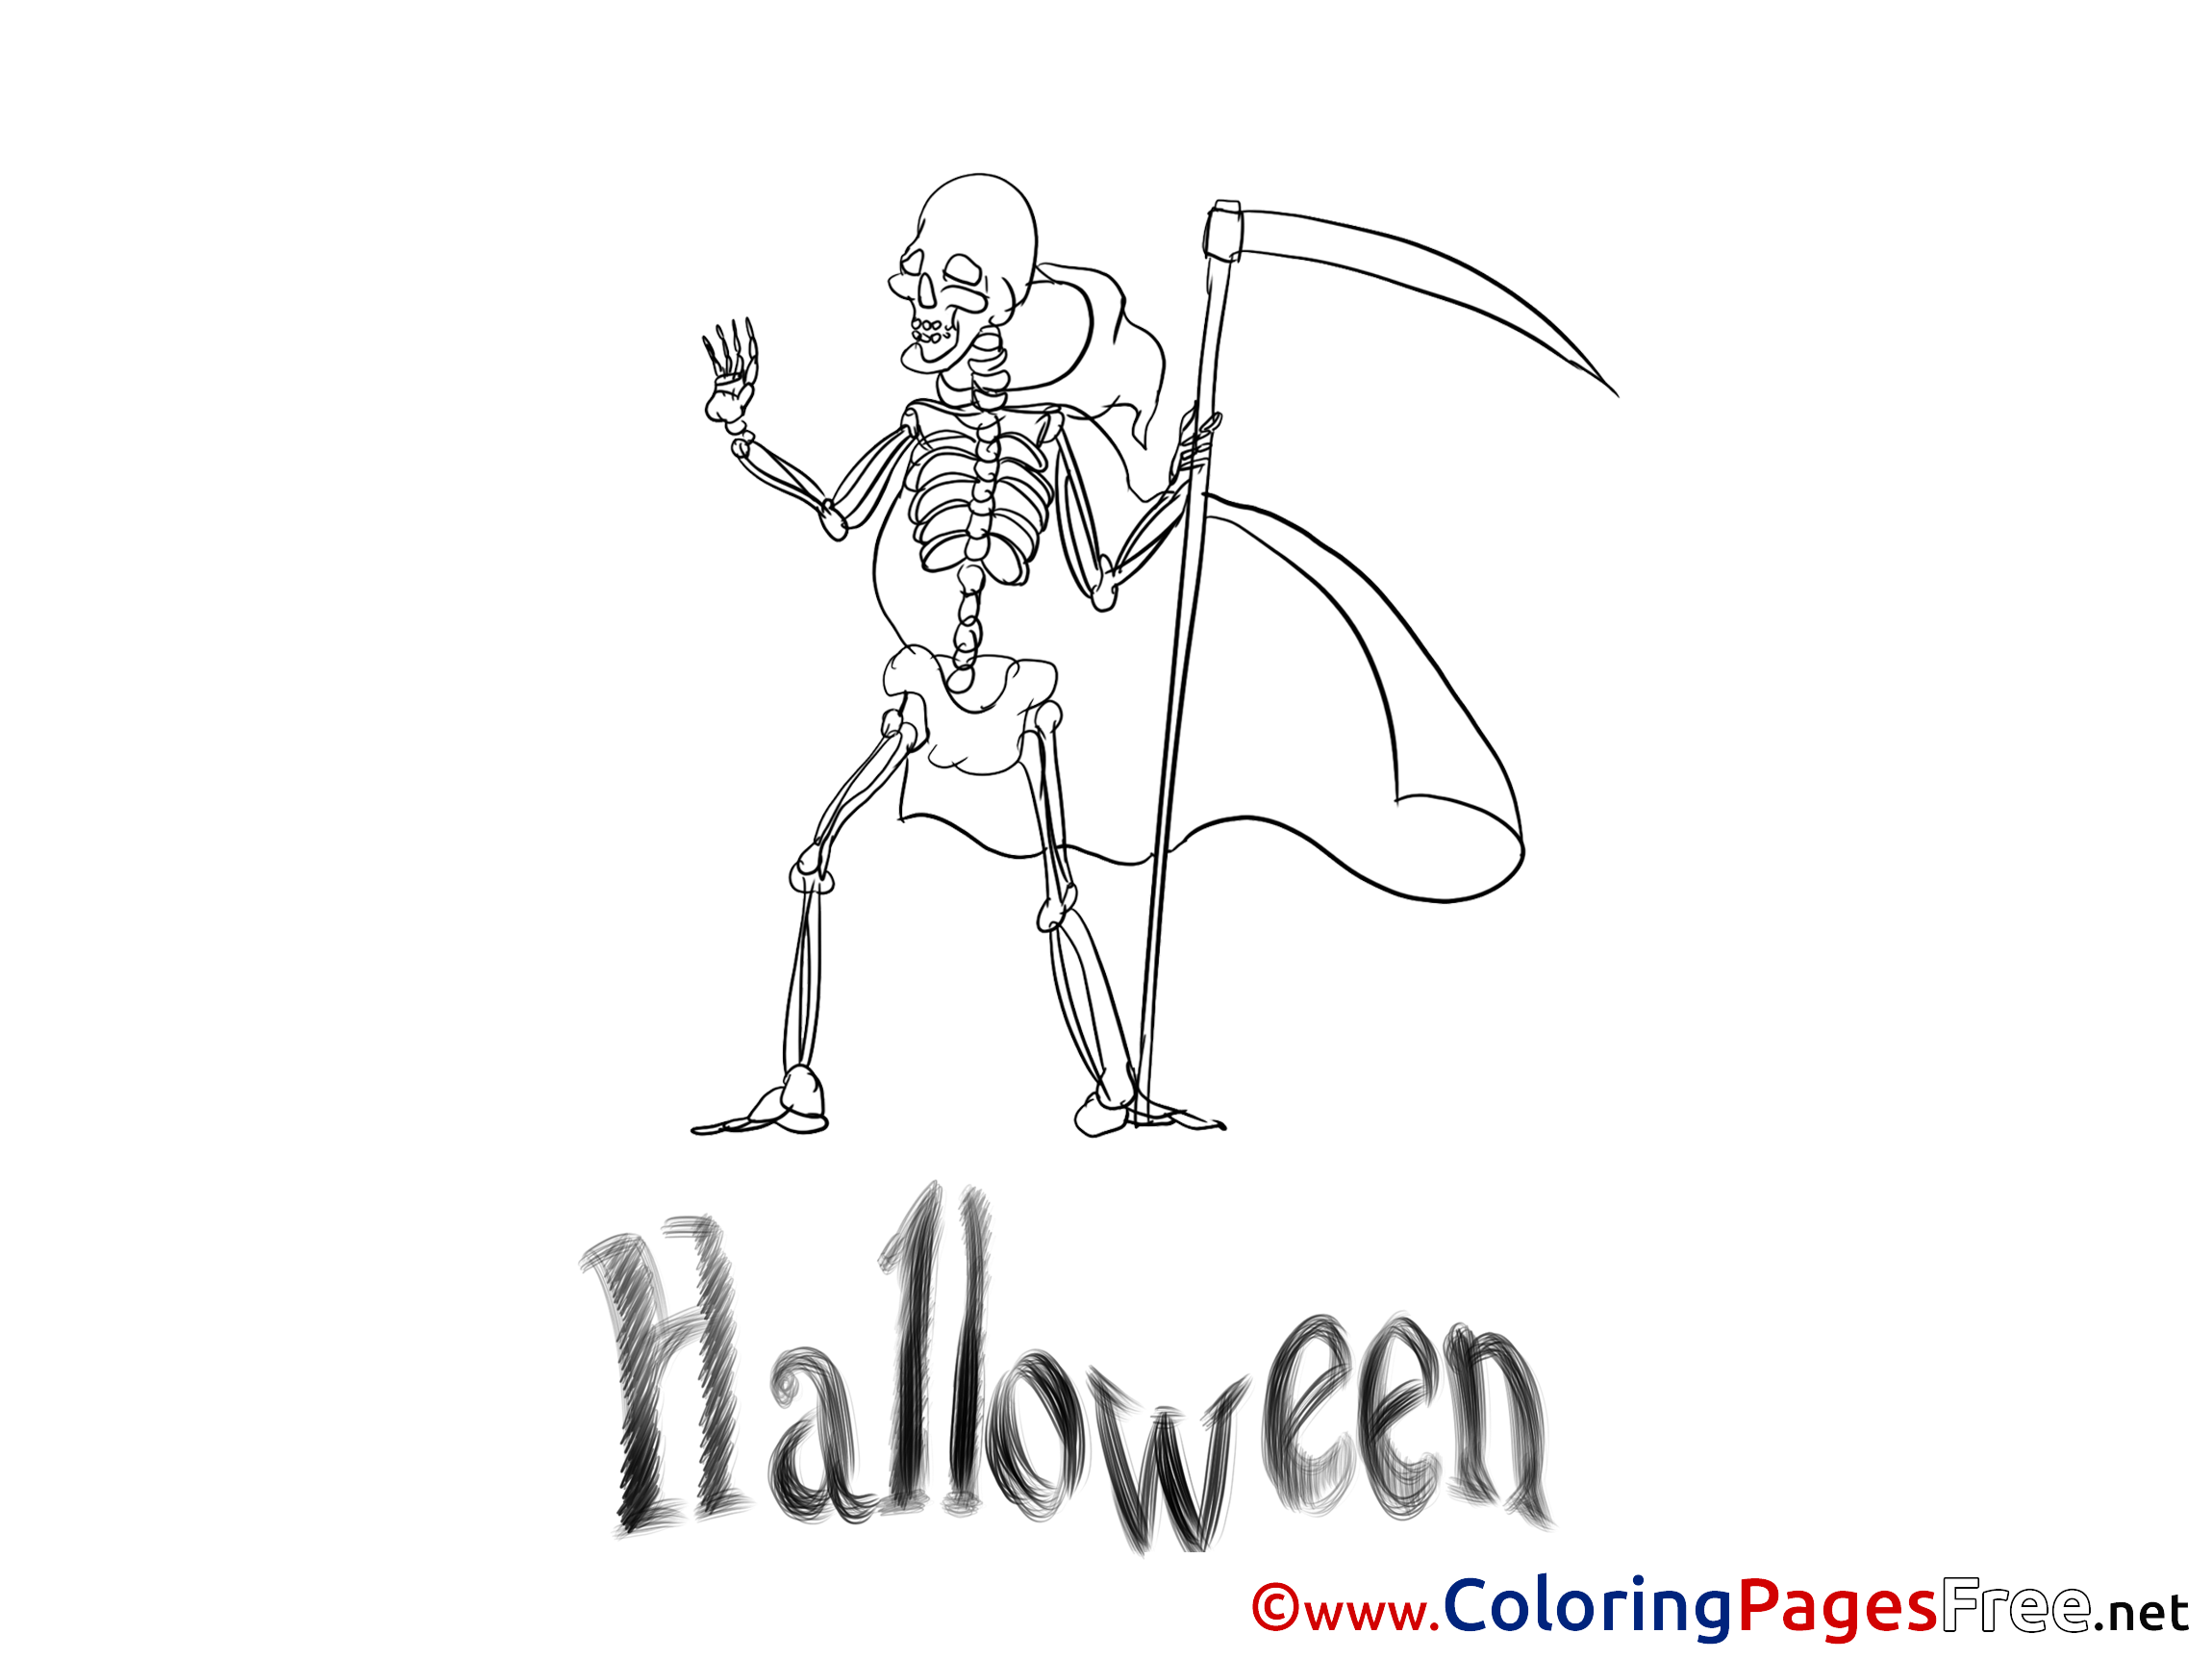 Skeleton Halloween Coloring Pages free